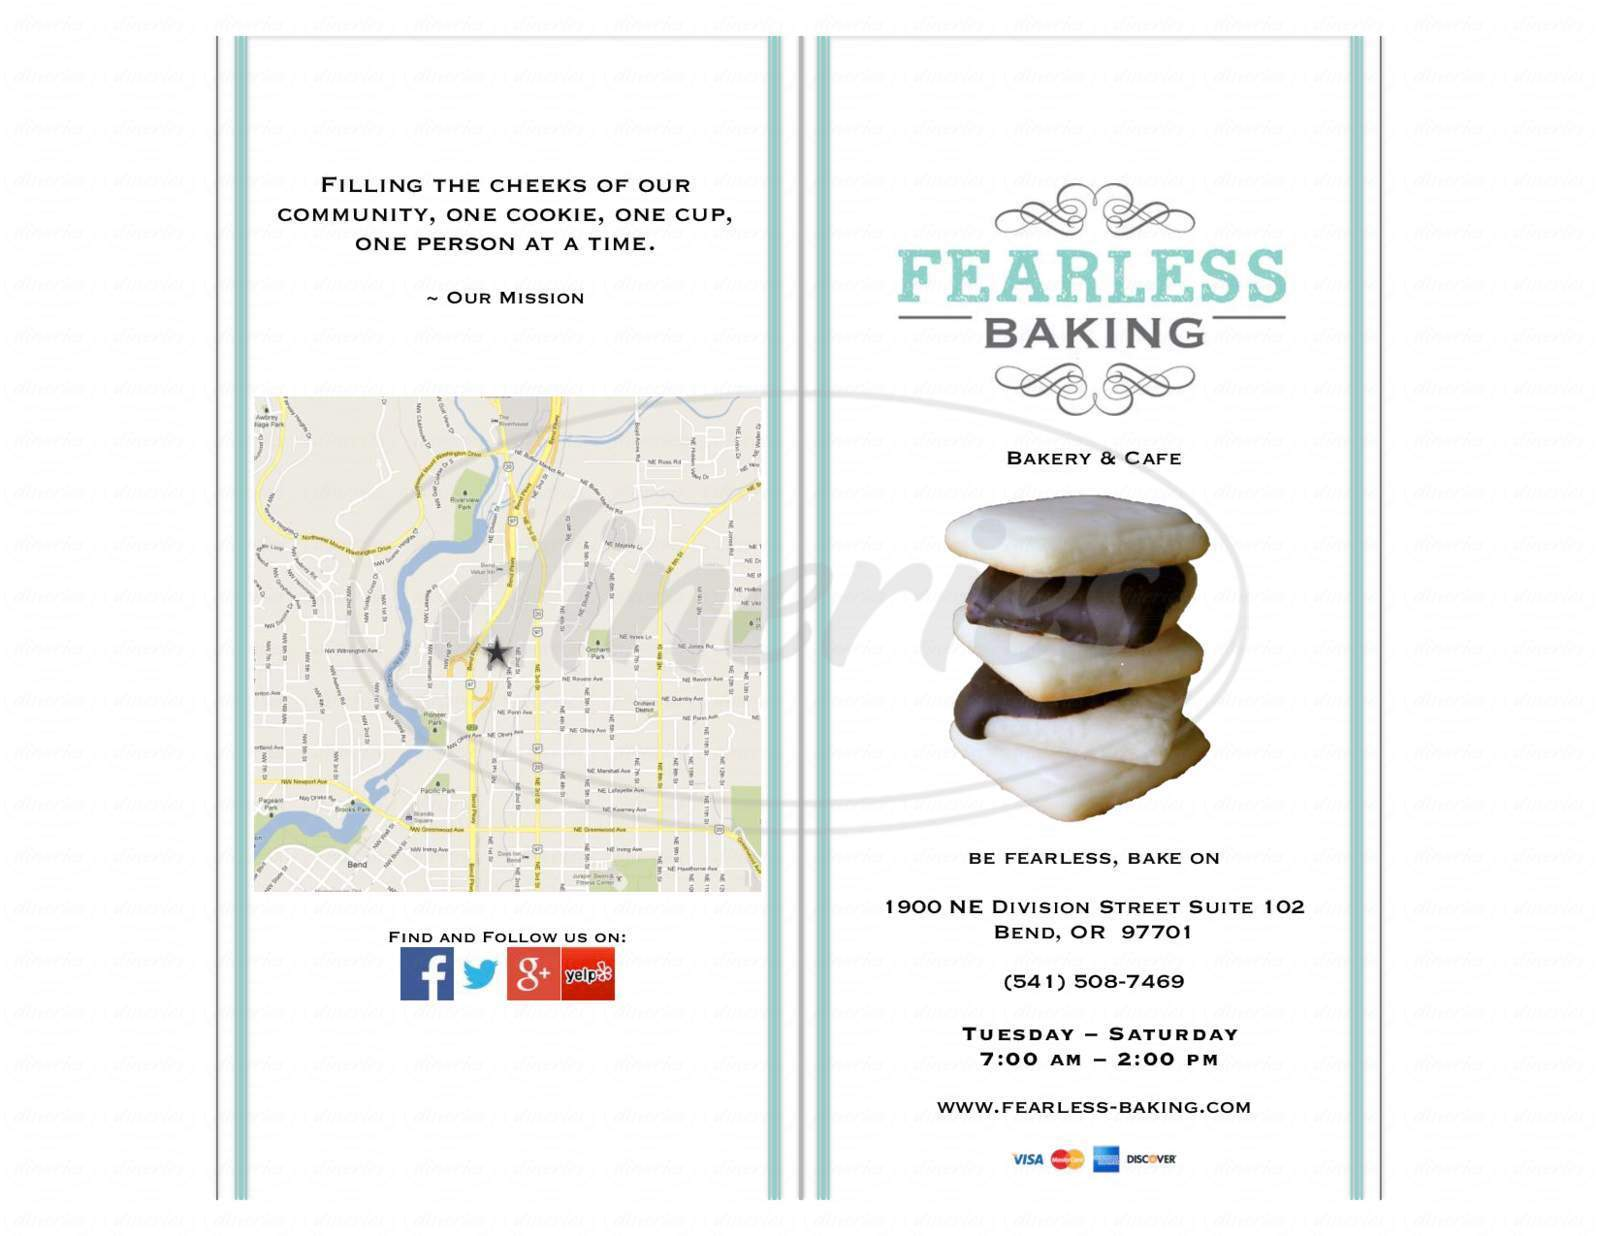 menu for Fearless Baking Bakery & Cafe